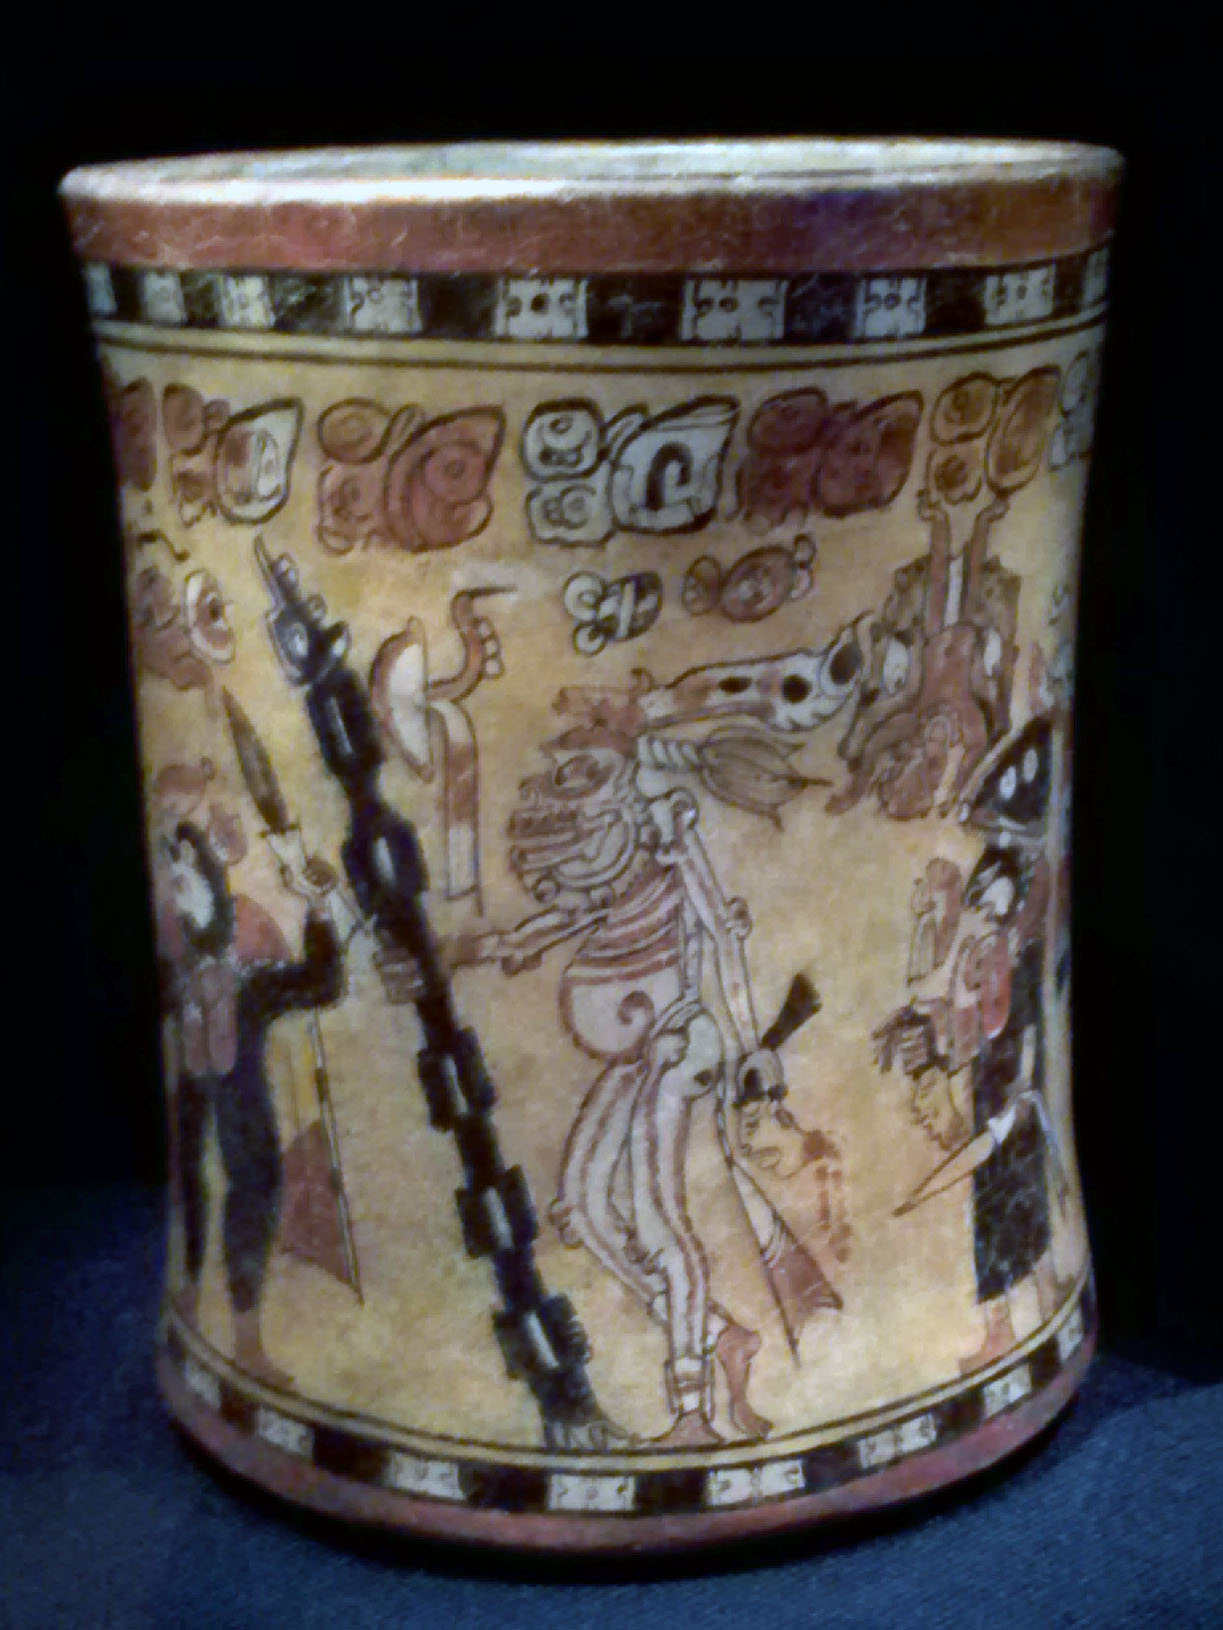 Mayan Vase with Eleven Figures from the Guatemalan Highlands AD 600-900